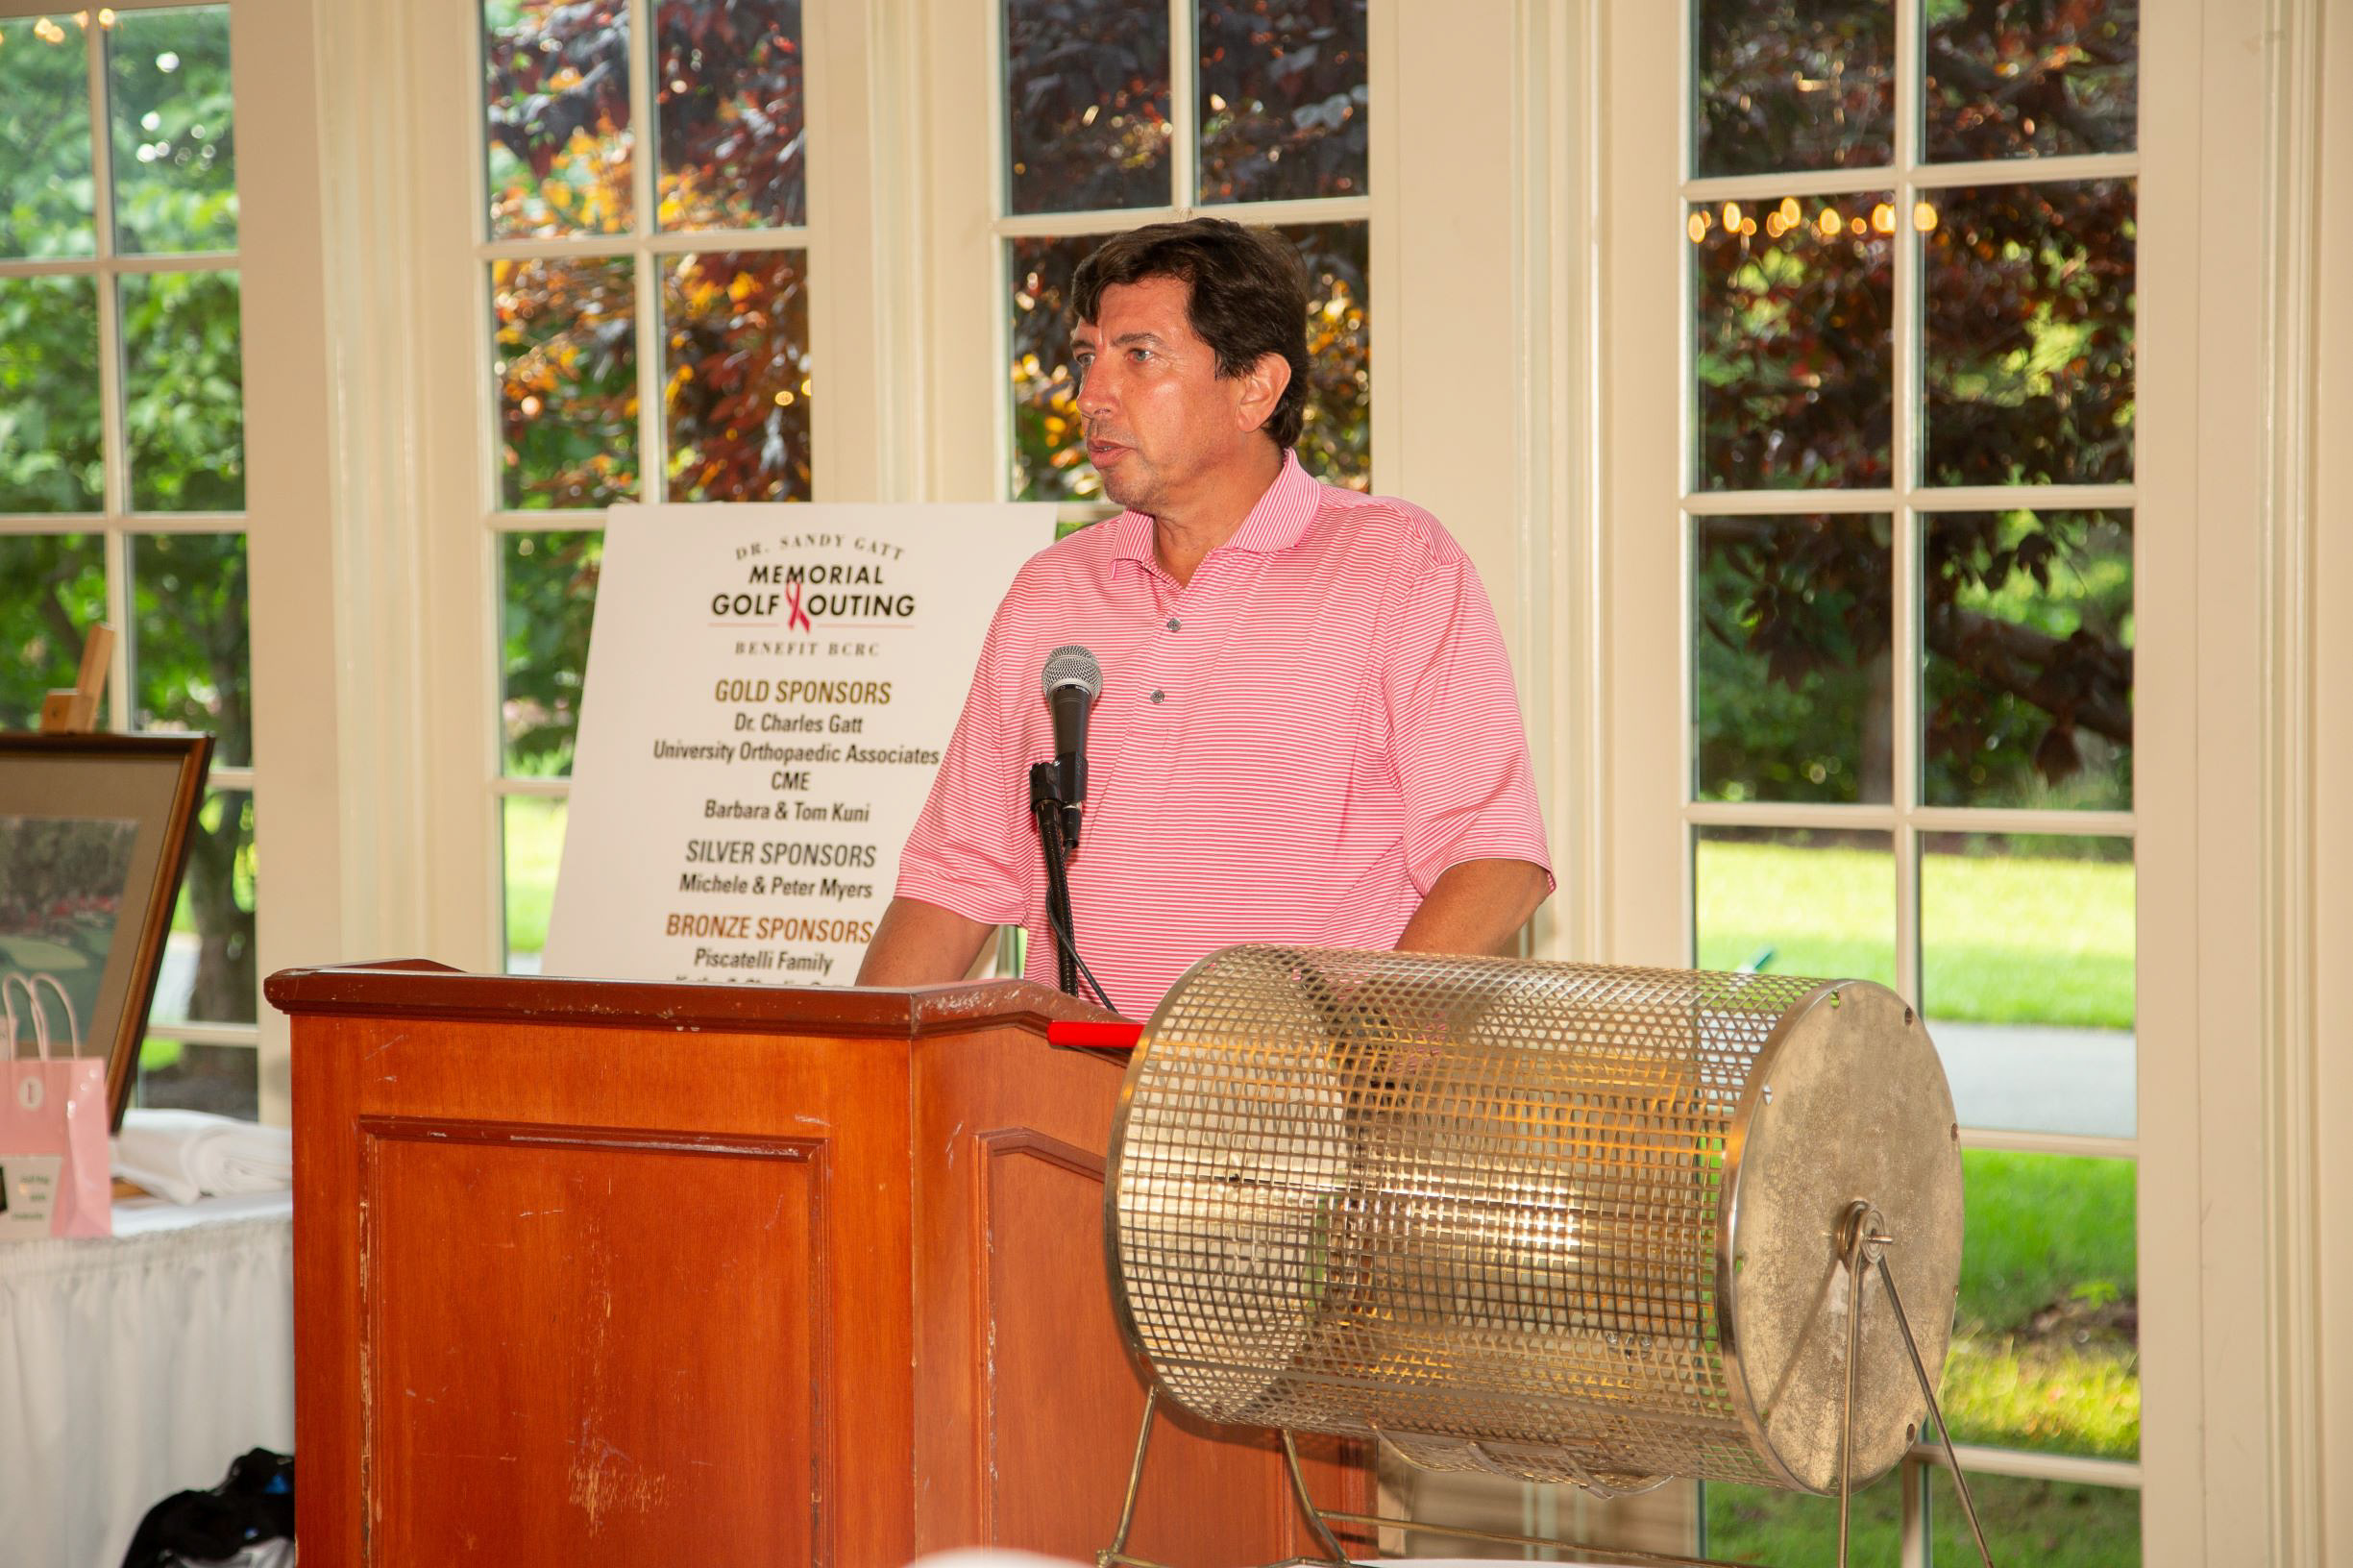 Dr. Charles J. Gatt, Jr. talking about the importance of the YWCA Princeton's Breast Cancer Resource Center (BCRC) and its transportation program supported by funds raised at the 5th Annual Gatt Golf Tournament.